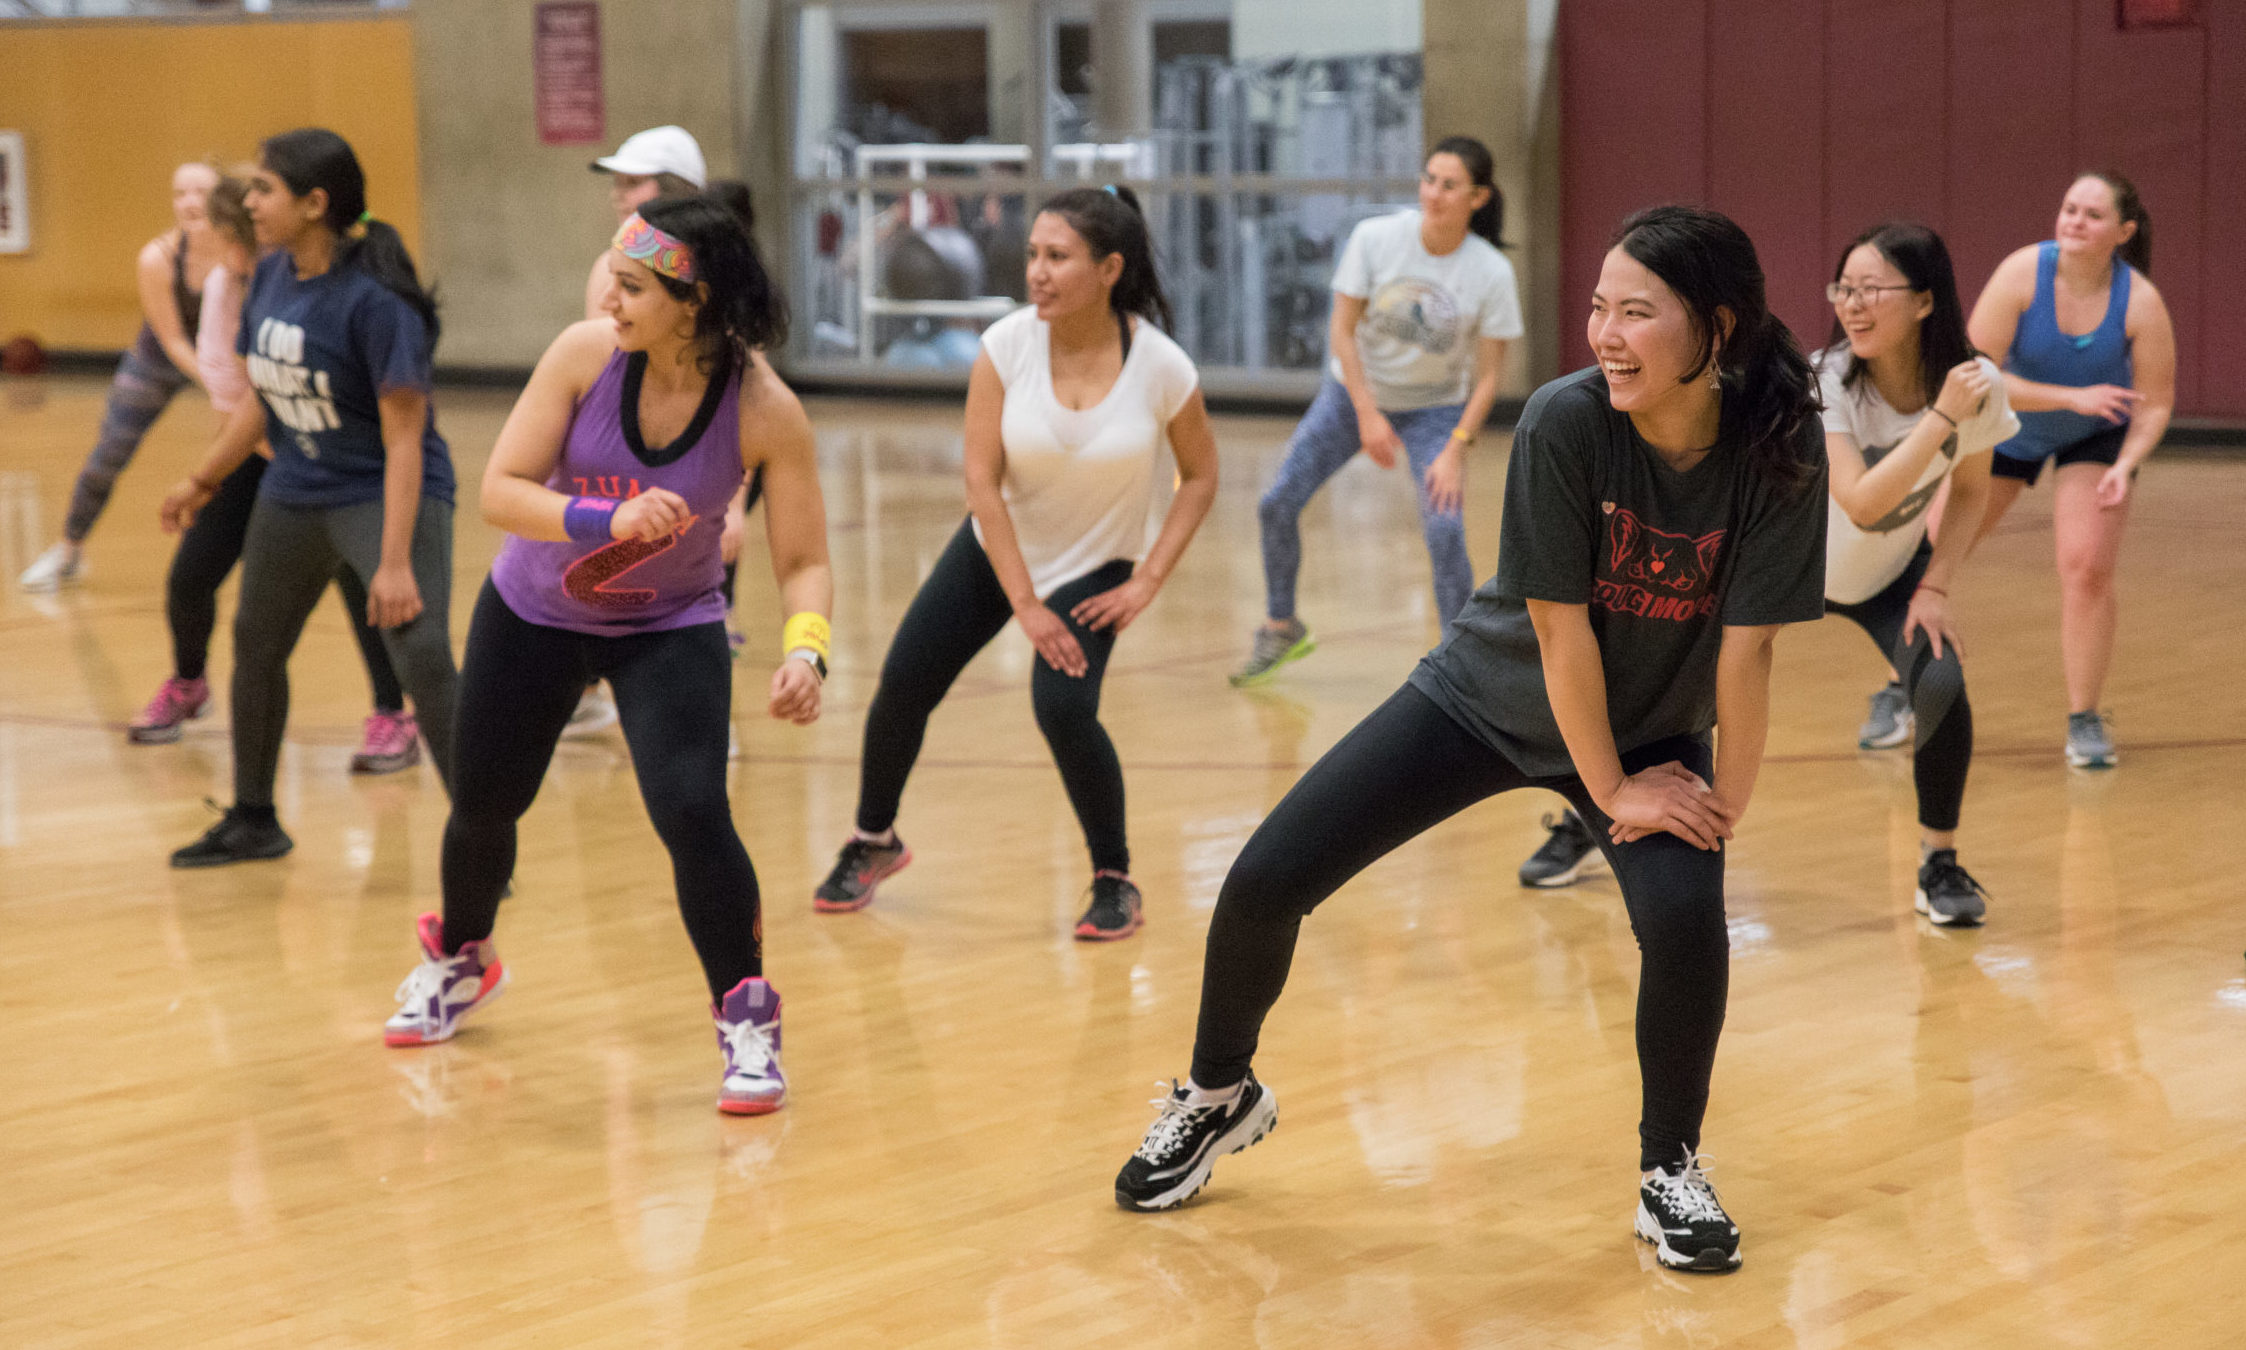 Photo of students dancing at a Zumba class